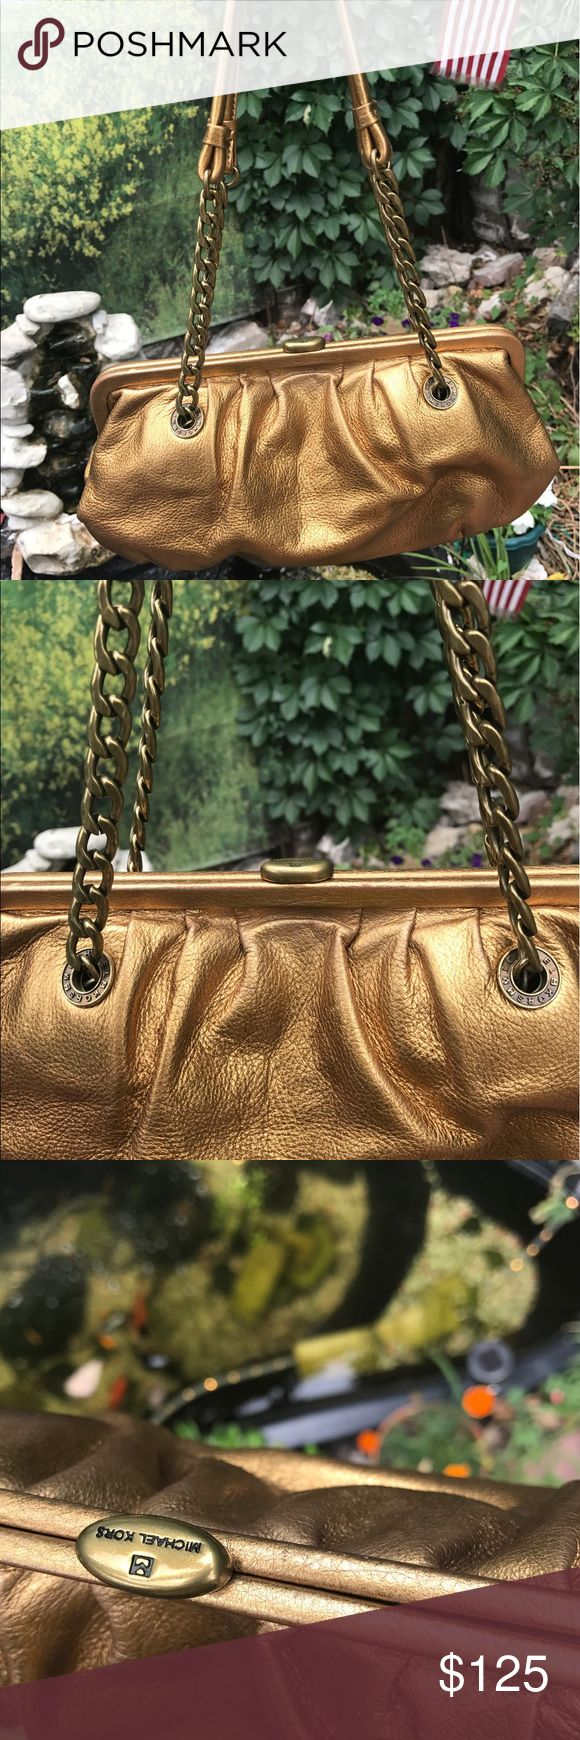 NEW MICHAEL KORS GOLD CHAIN LINKED BAG! 😍🔥 AUTHENTIC MICHAEL KORS GOLD CHAIN LINKED BAG! 😍🔥Brand New! Never Used!! Sexy and Beautiful!! Definitely a head turner!! Gorgeous chain linked strap with gold clasp closure!! Absolute stunner!! AUTHENTIC MICHAEL KORS GOLD CHAIN LINKED BAG! 😍🔥 No stains, tears or odors!! Smoke/Pet Free Home!! Bundle & Save!! MICHAEL Michael Kors Bags